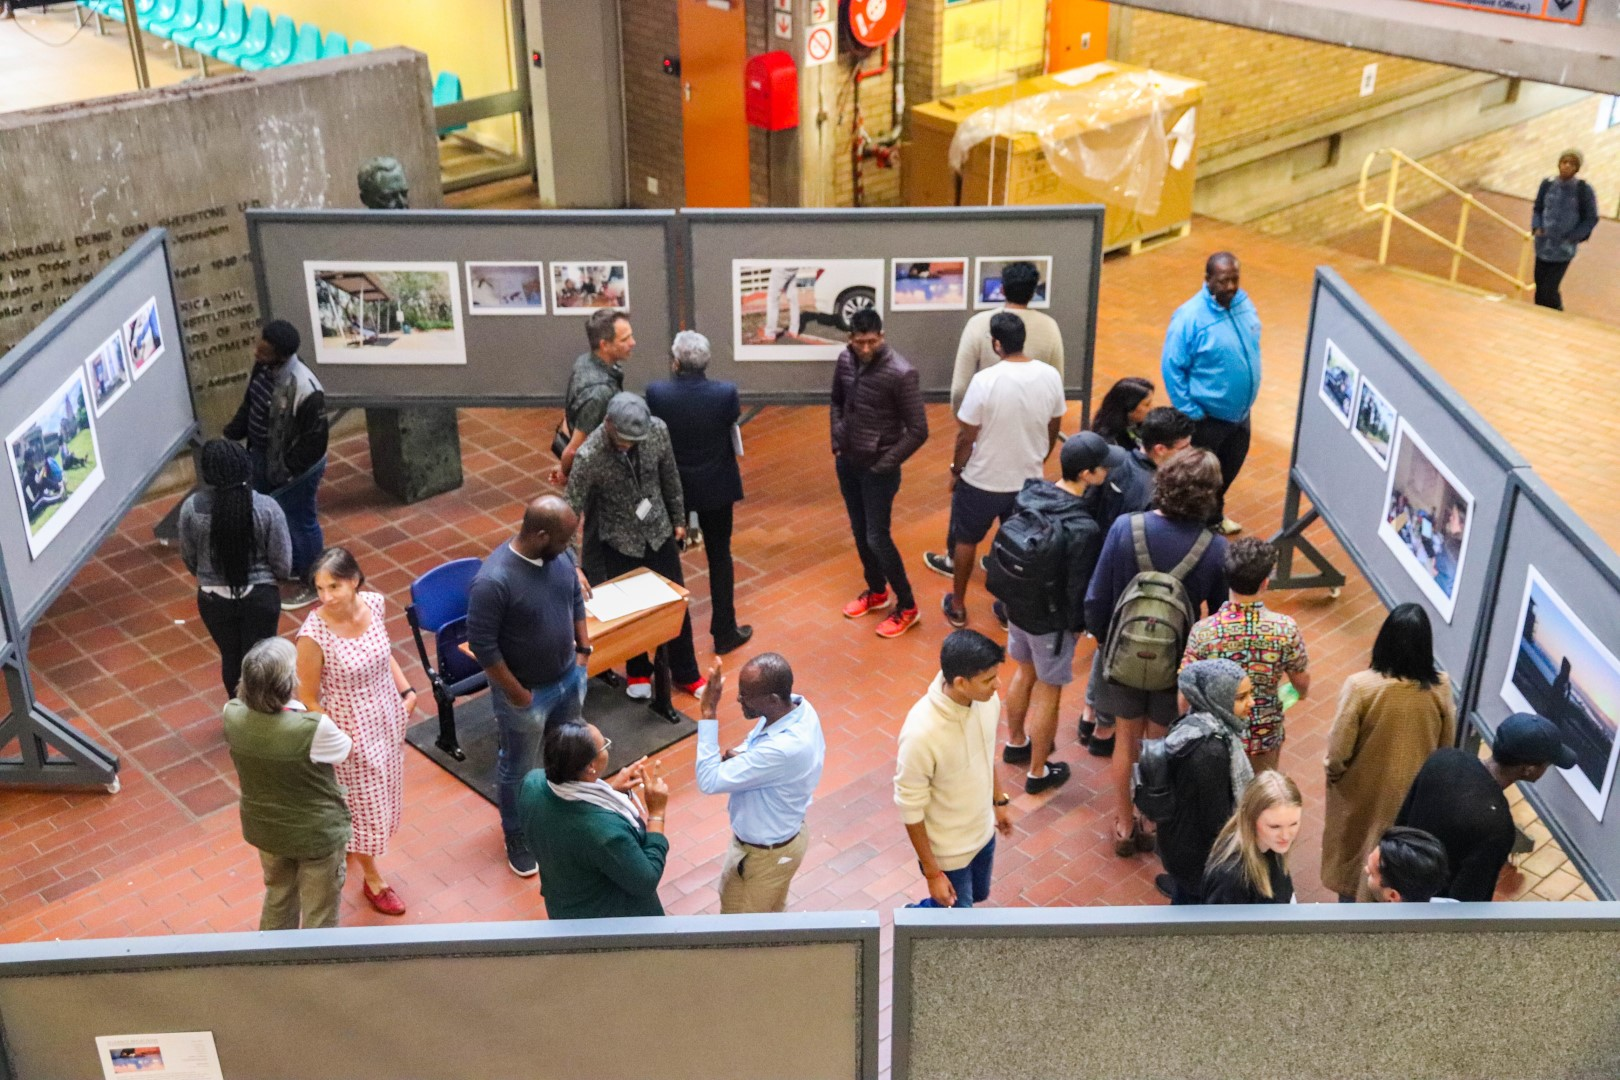 People engage with the exhibit